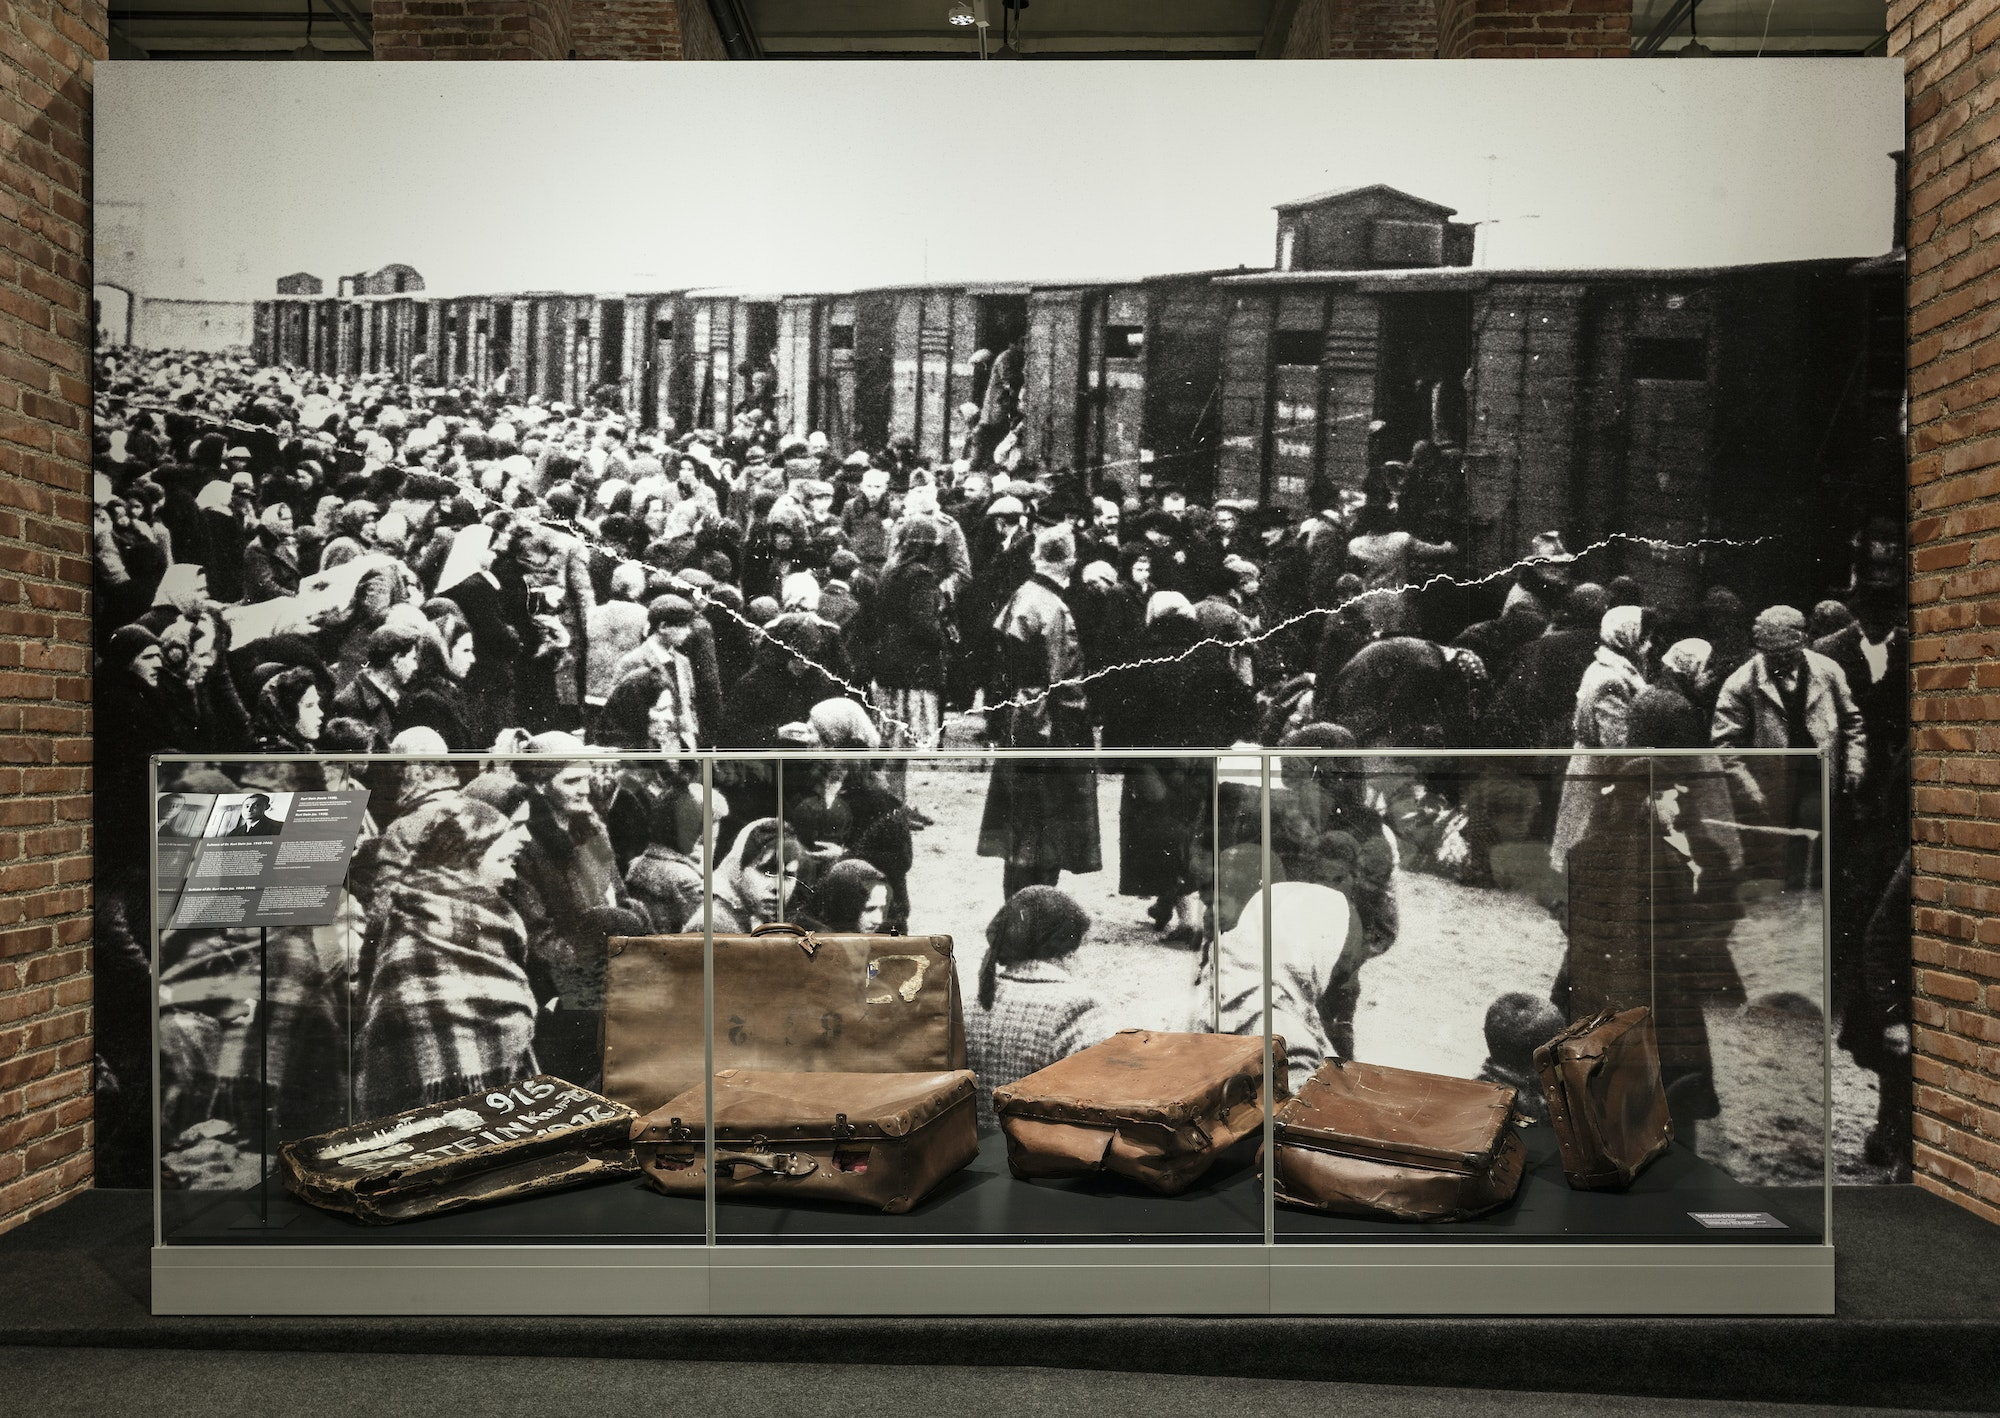 The exhibition showcases suitcases confiscated from deportees to Auschwitz in front of a photograph of hostages arriving at the camp.